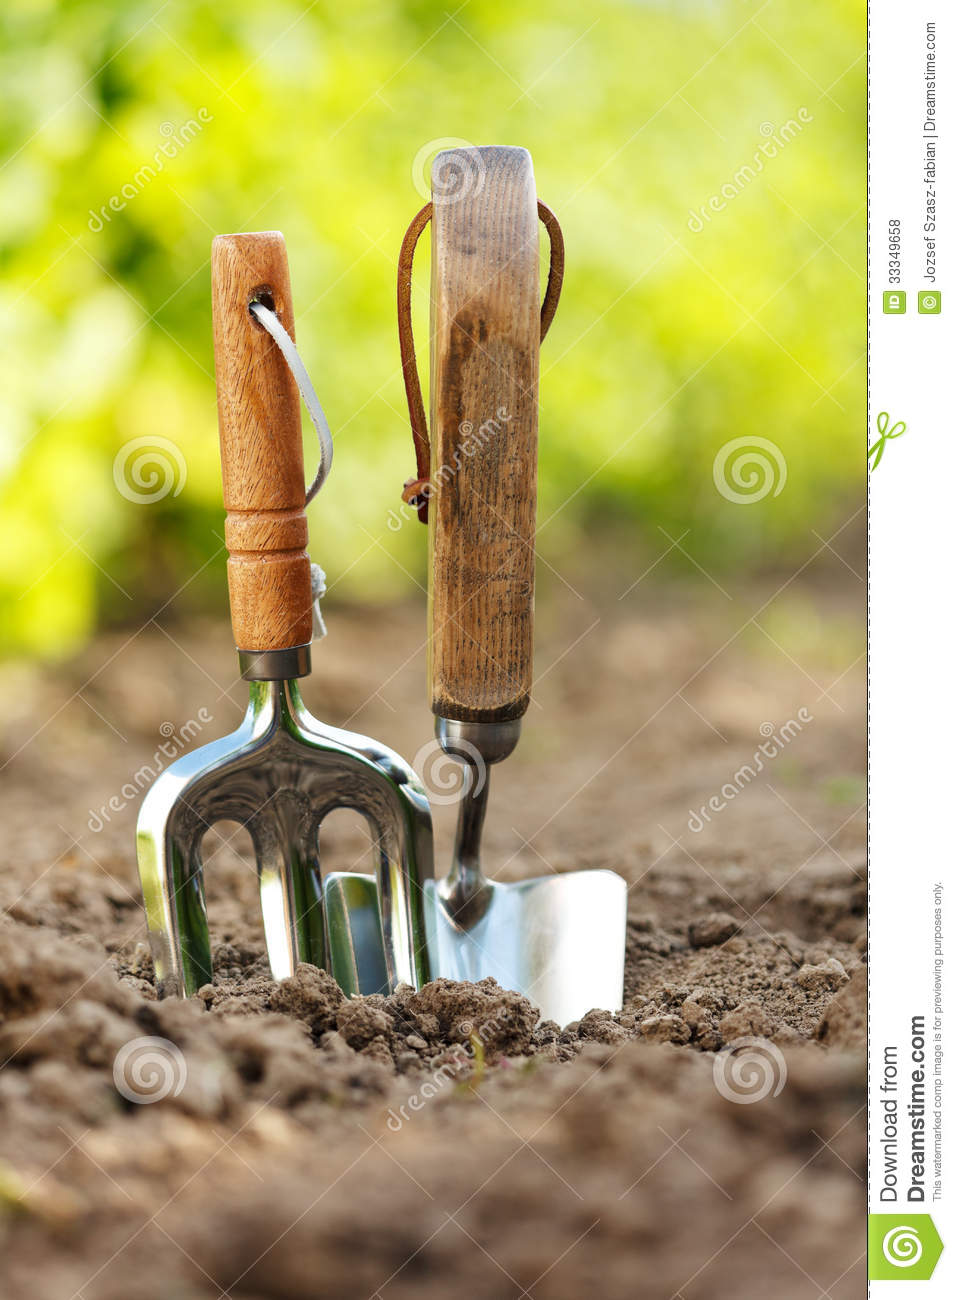 Garden tools stuck in soil royalty free stock photos for Soil utensils